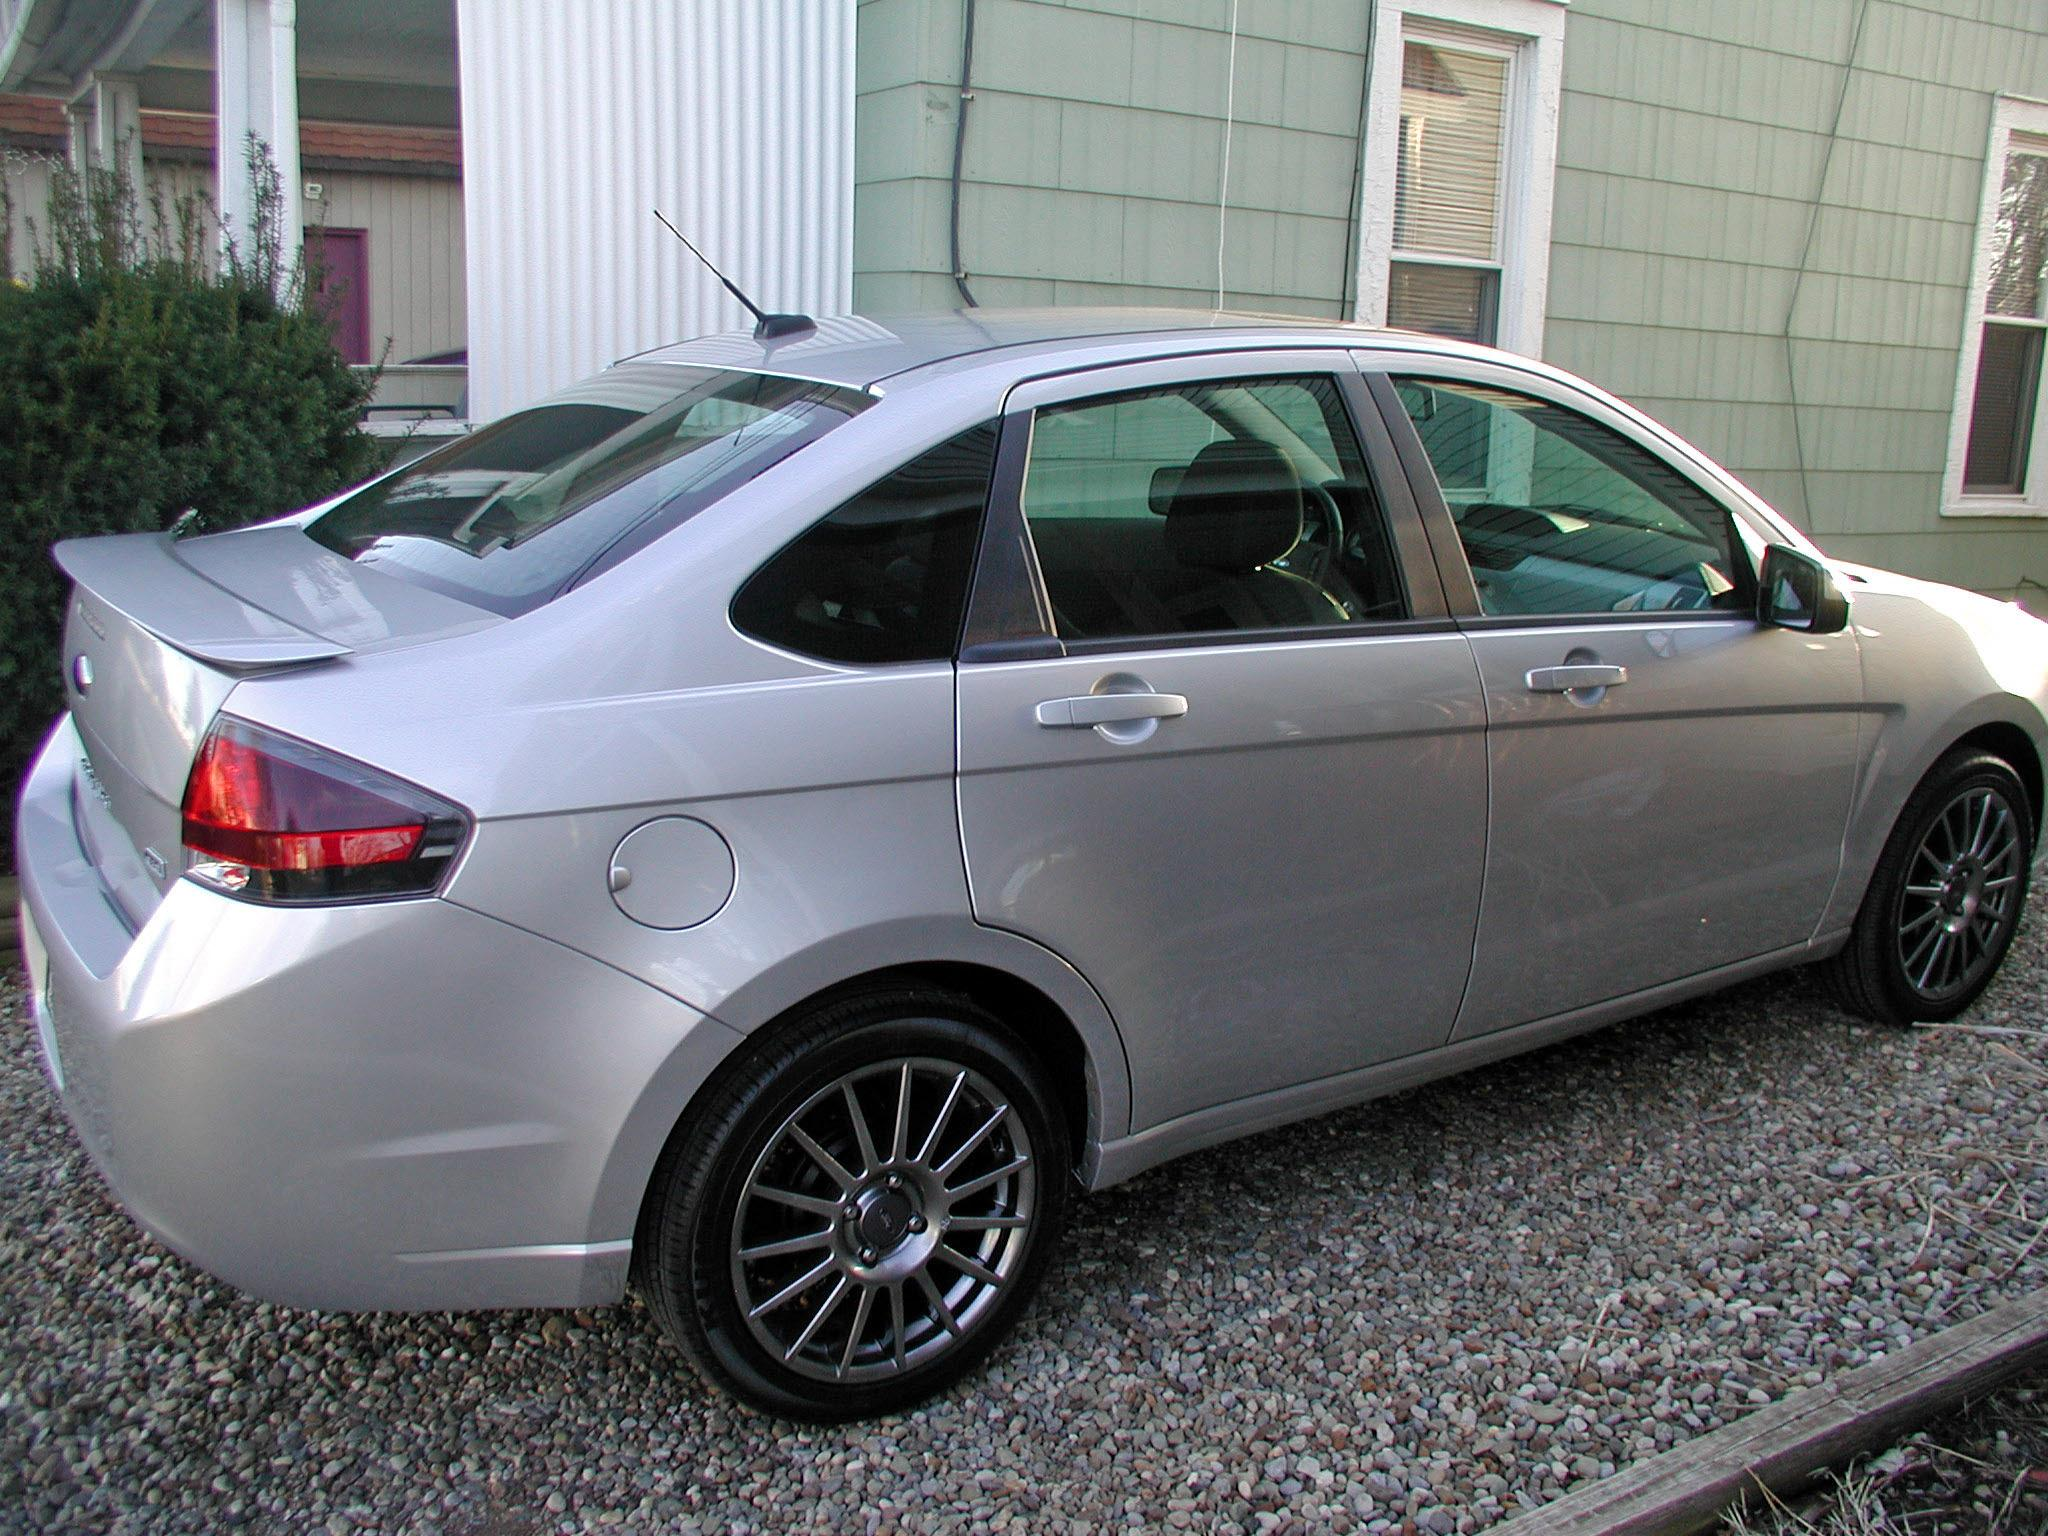 tunachef 2010 ford focusses sedan 4d specs photos. Black Bedroom Furniture Sets. Home Design Ideas